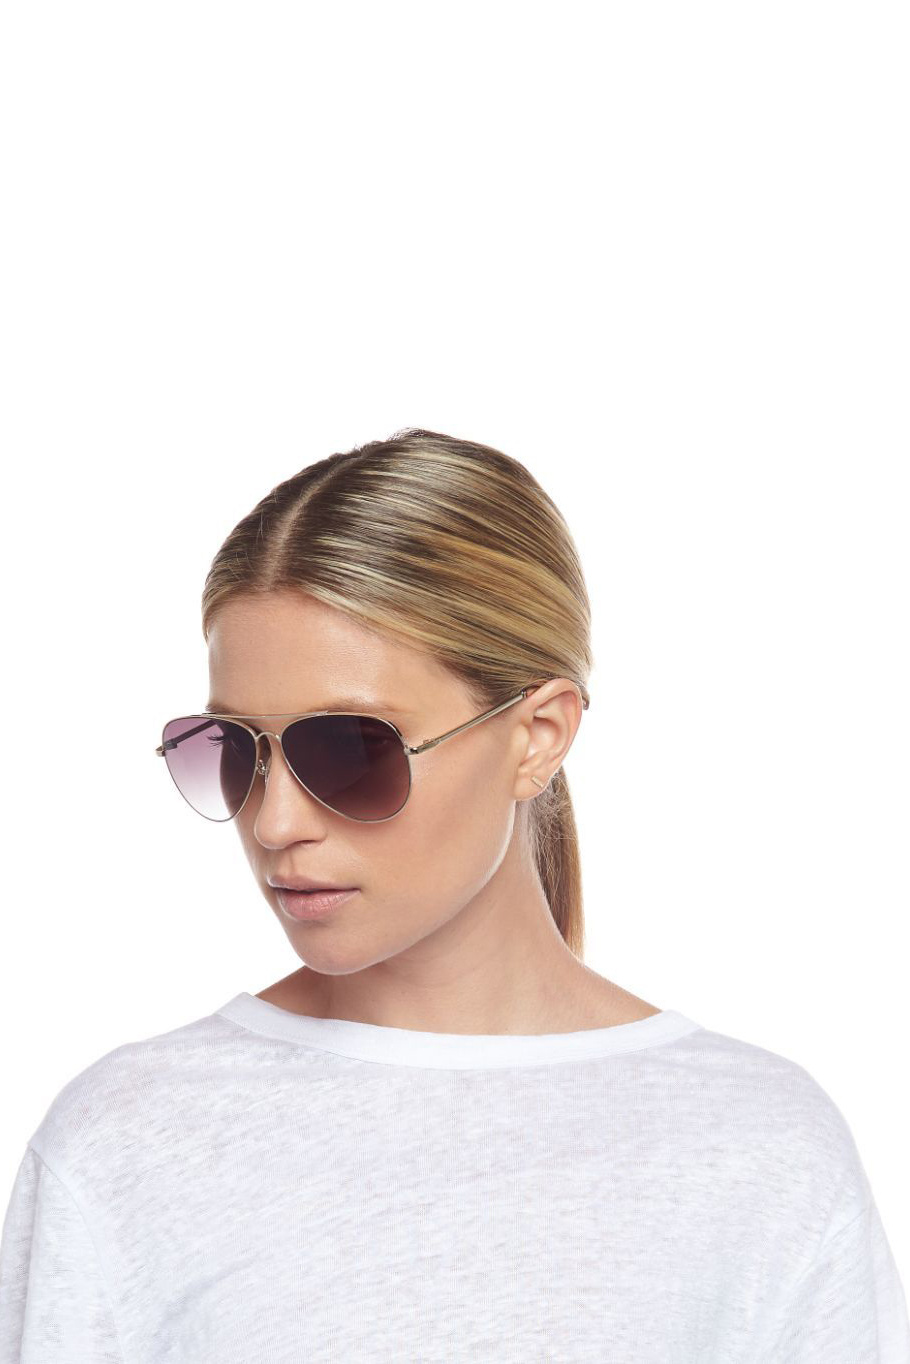 Fly High Sunglasses - Gold-4